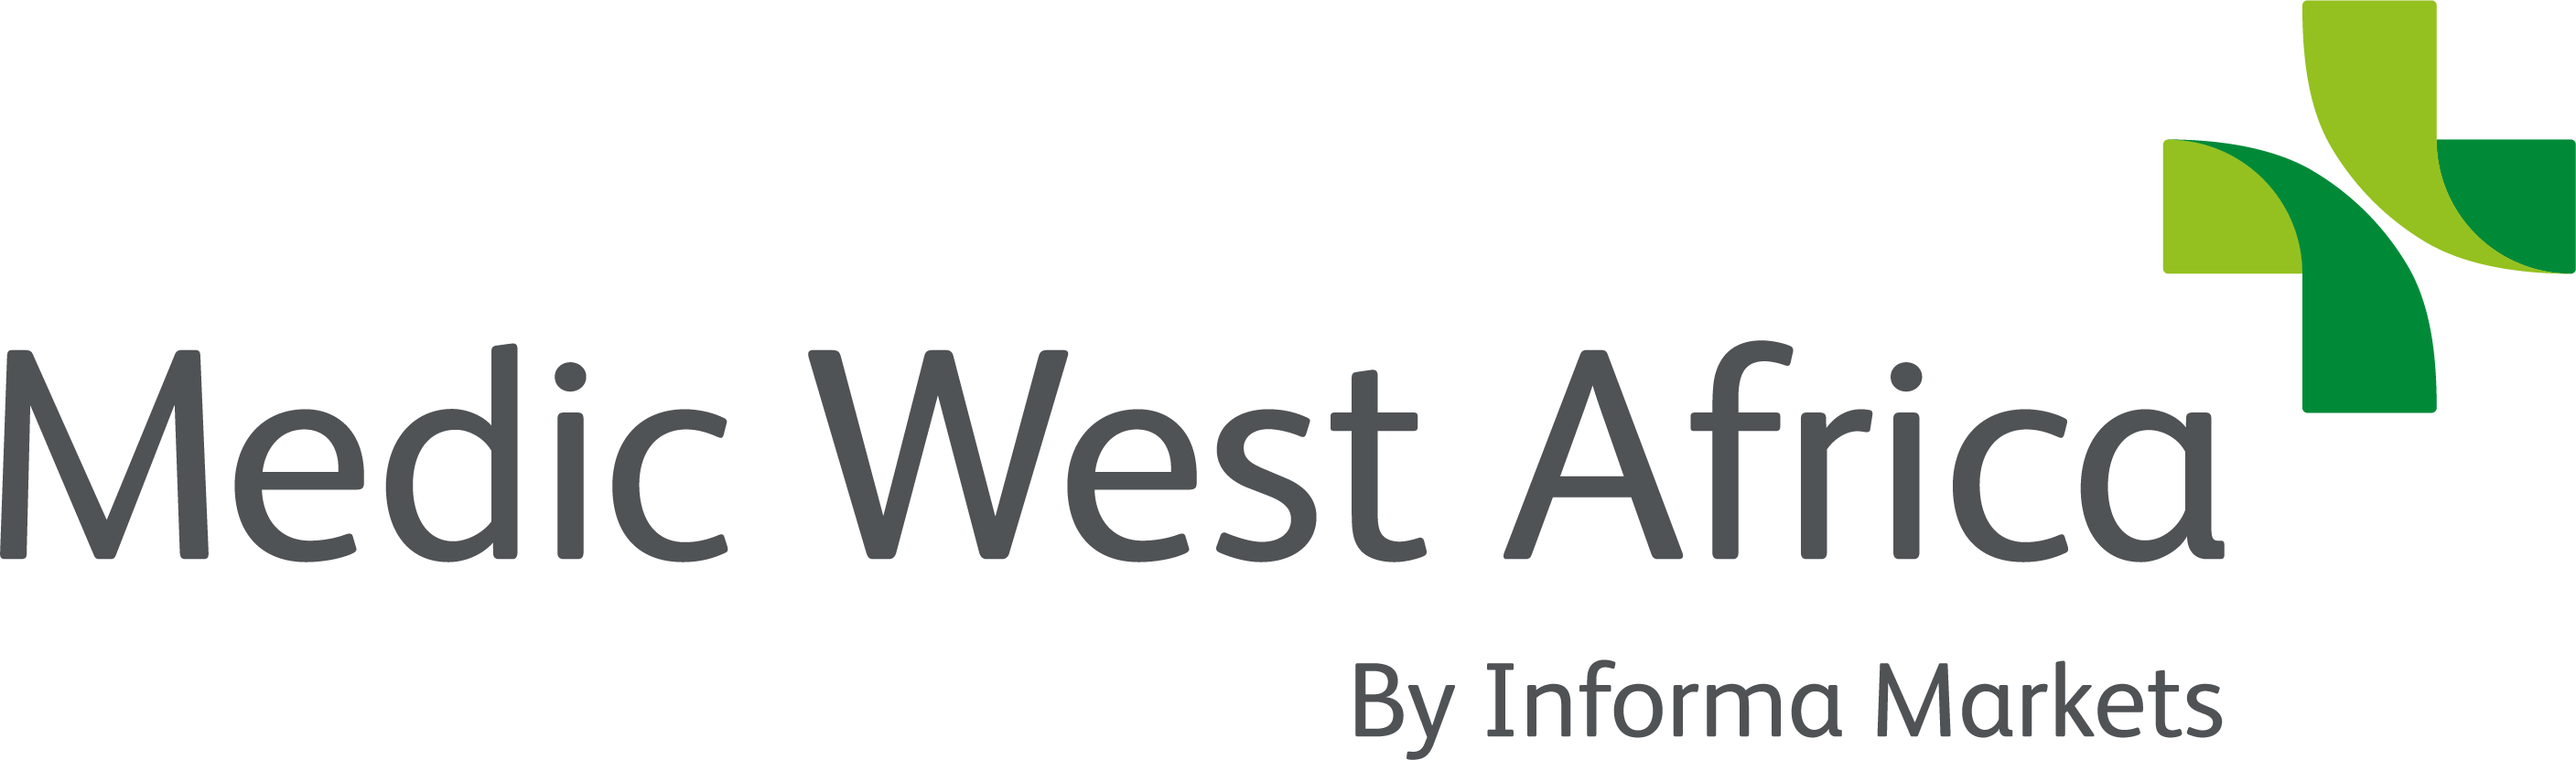 Medic West Africa 2019 Exhibitor Directory | Devices and